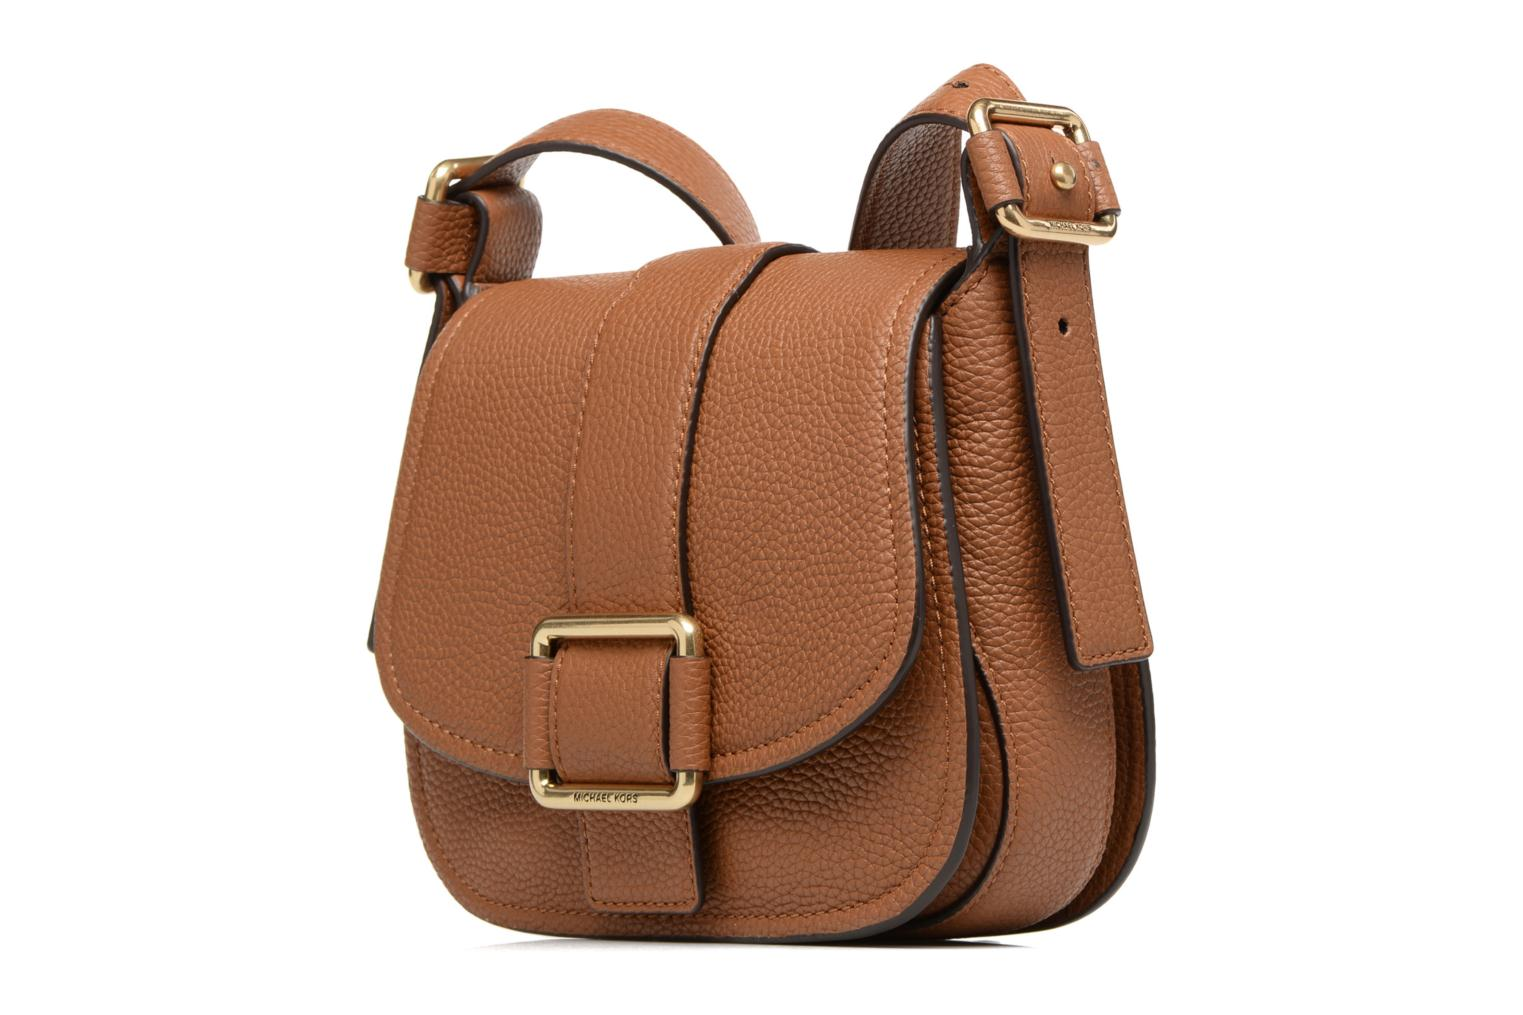 MAXINE MD SADDLE BAG Luggage